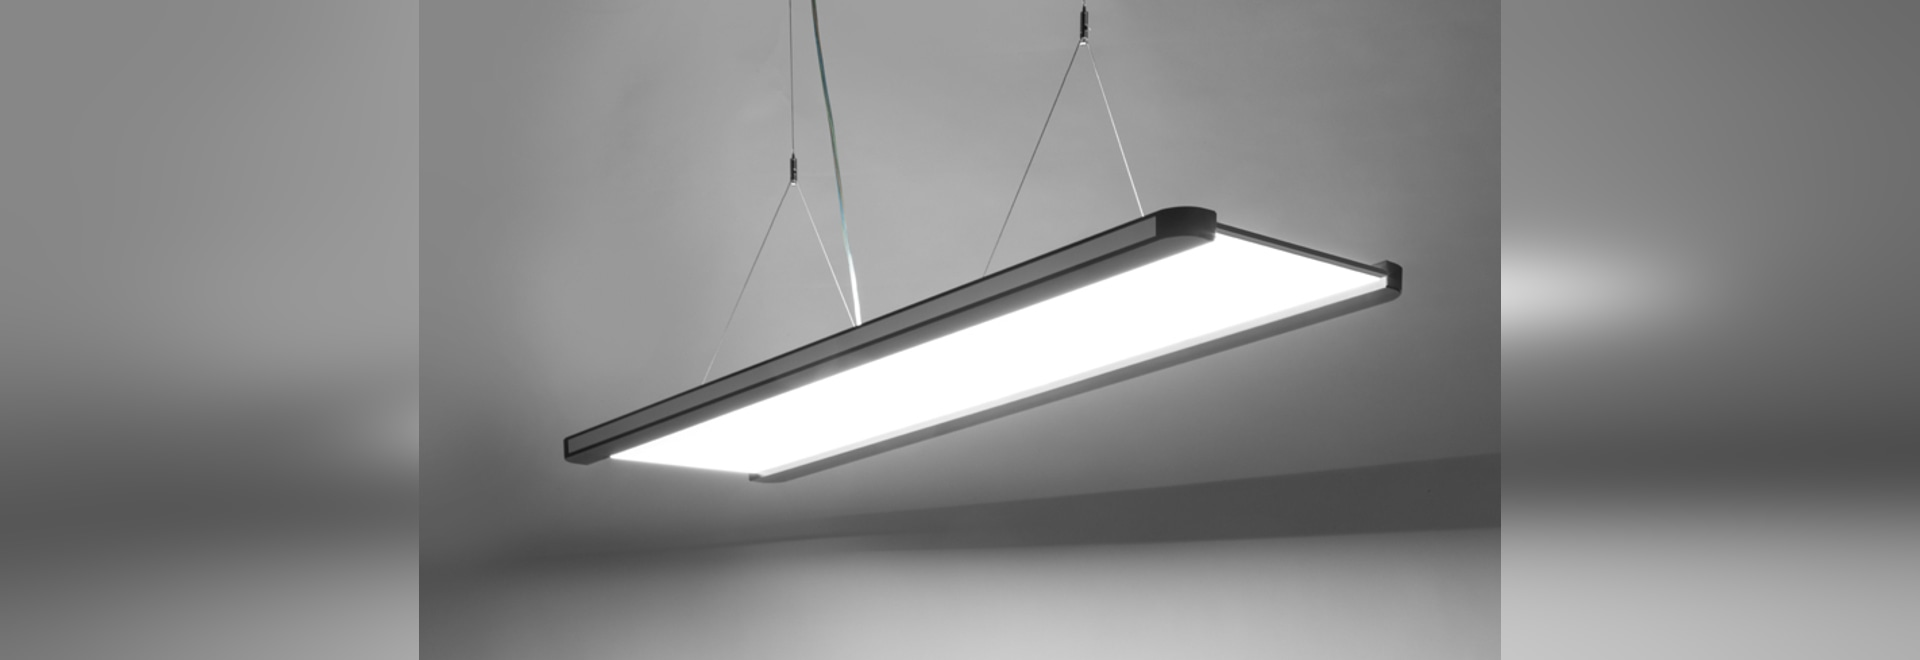 suspended lighting. LUCID - Innovative Functionality In Aesthetic Transparent Form. Suspended Lighting